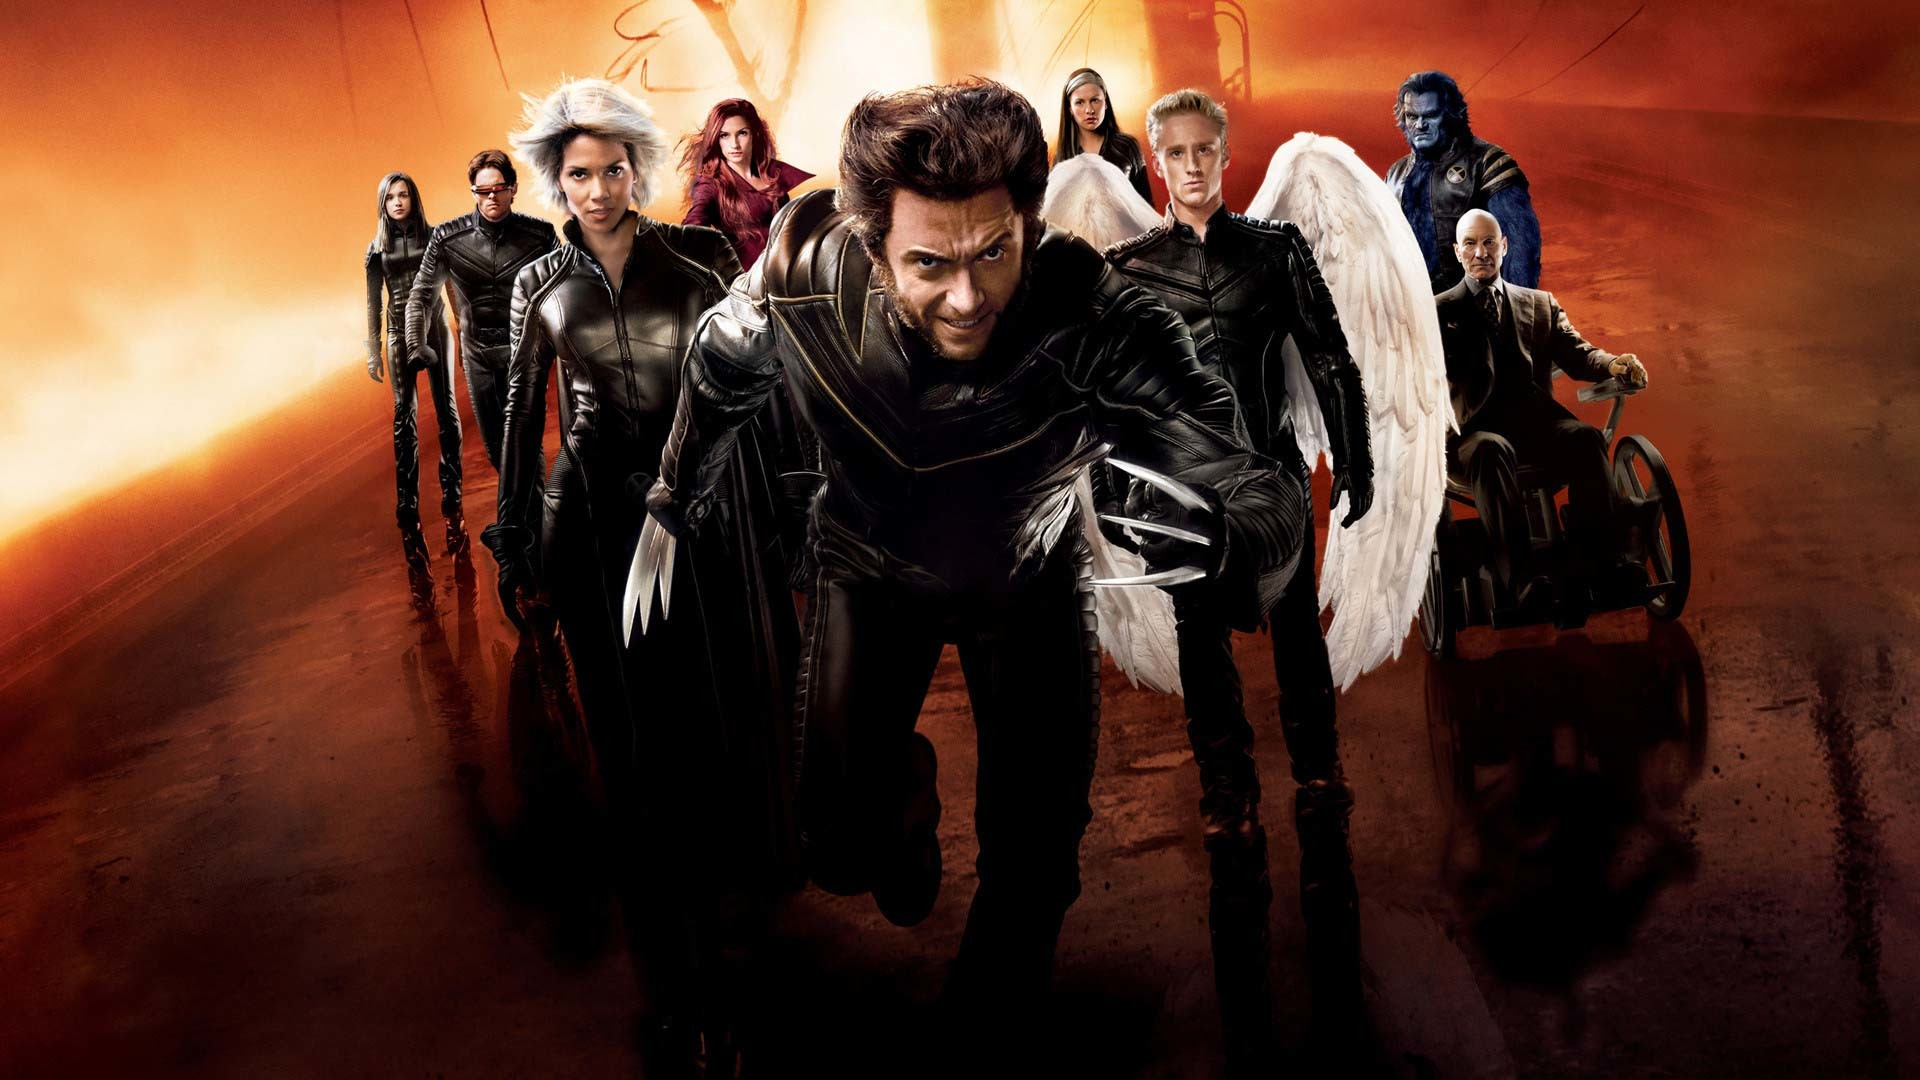 1920x1080 Hugh Jackman X-Men Wolverine Wallpapers HD Collection